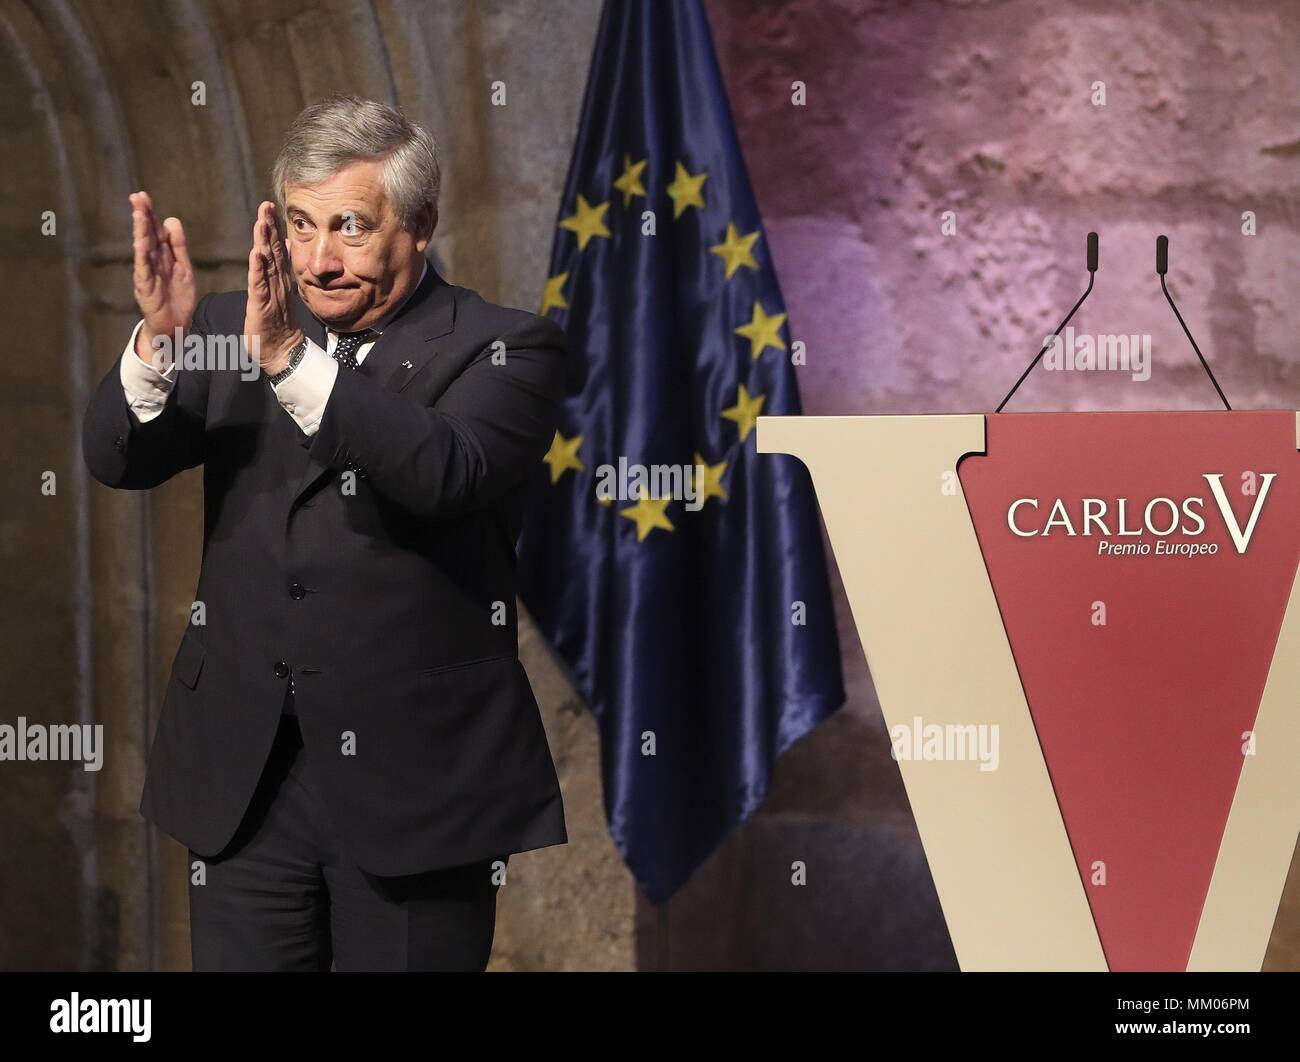 President of EU Parliament, Italian Antonio Tajani, applauds after receiving the Carlos V European Award from Spain's King Felipe VI (not pictured) during the handover ceremony of the XII Carlos V European Award at the Monastery of Yuste in Caceres, Spain, 09 May 2018. EFE/ Ballesteros - Stock Image